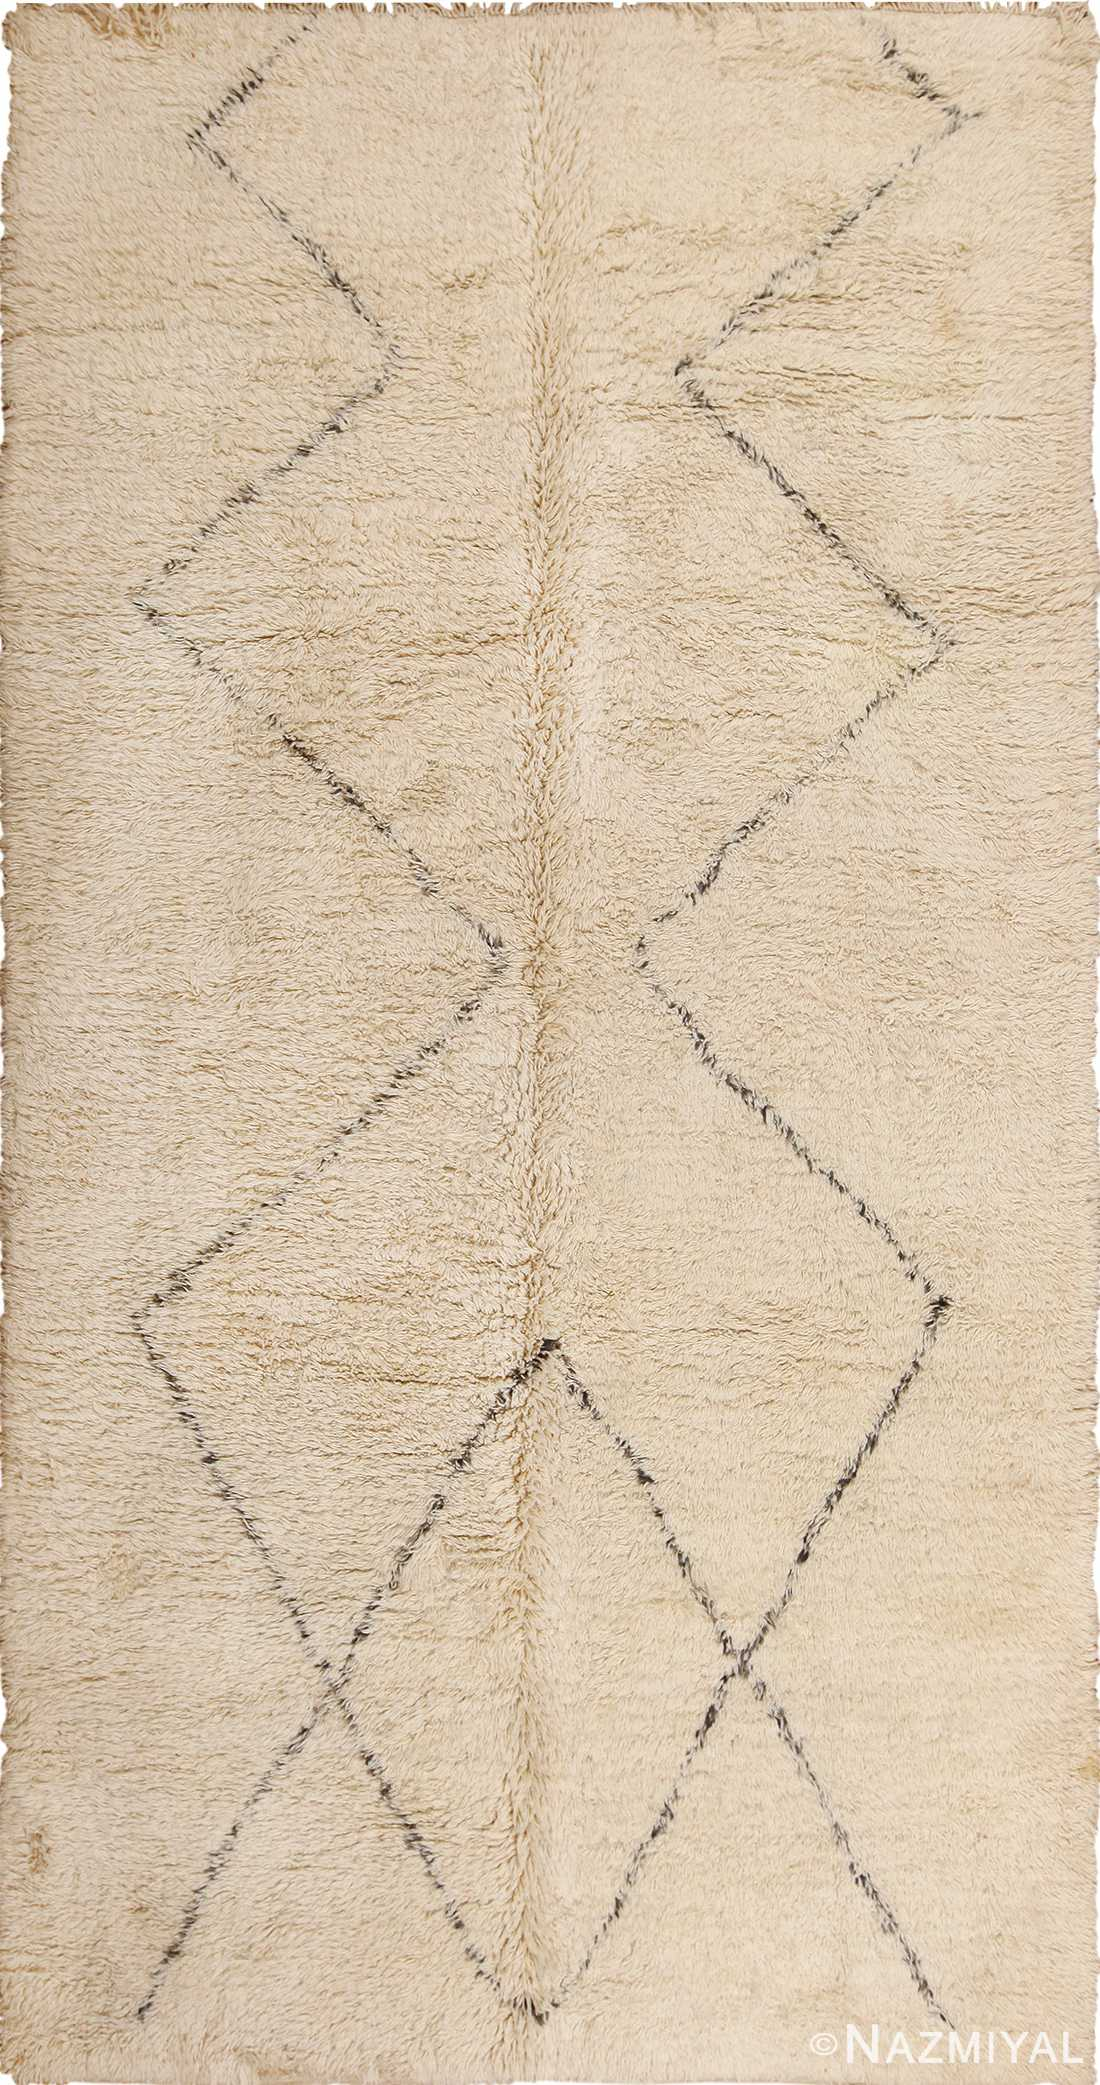 Vintage Ivory and Brown Beni Ourain Moroccan Rug 49890 Nazmiyal